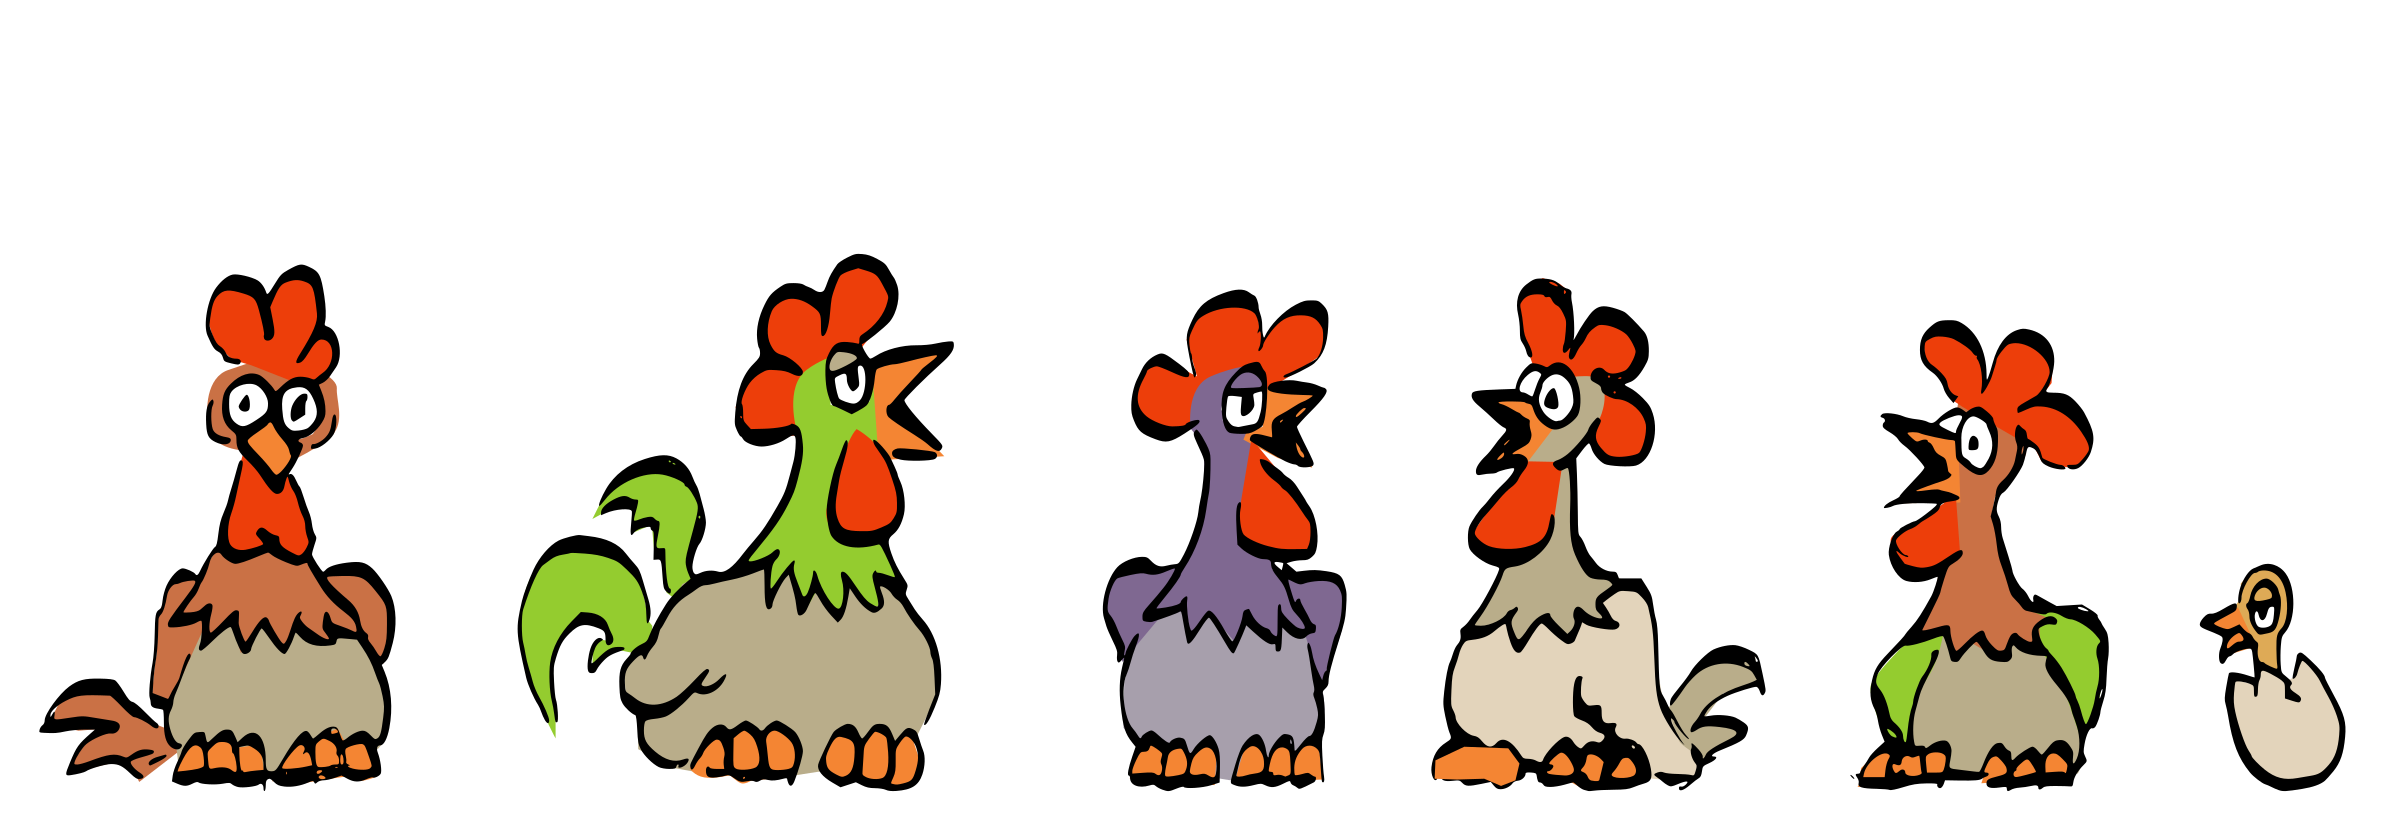 Hen house clipart royalty free stock Clipart - Chicken Chat royalty free stock